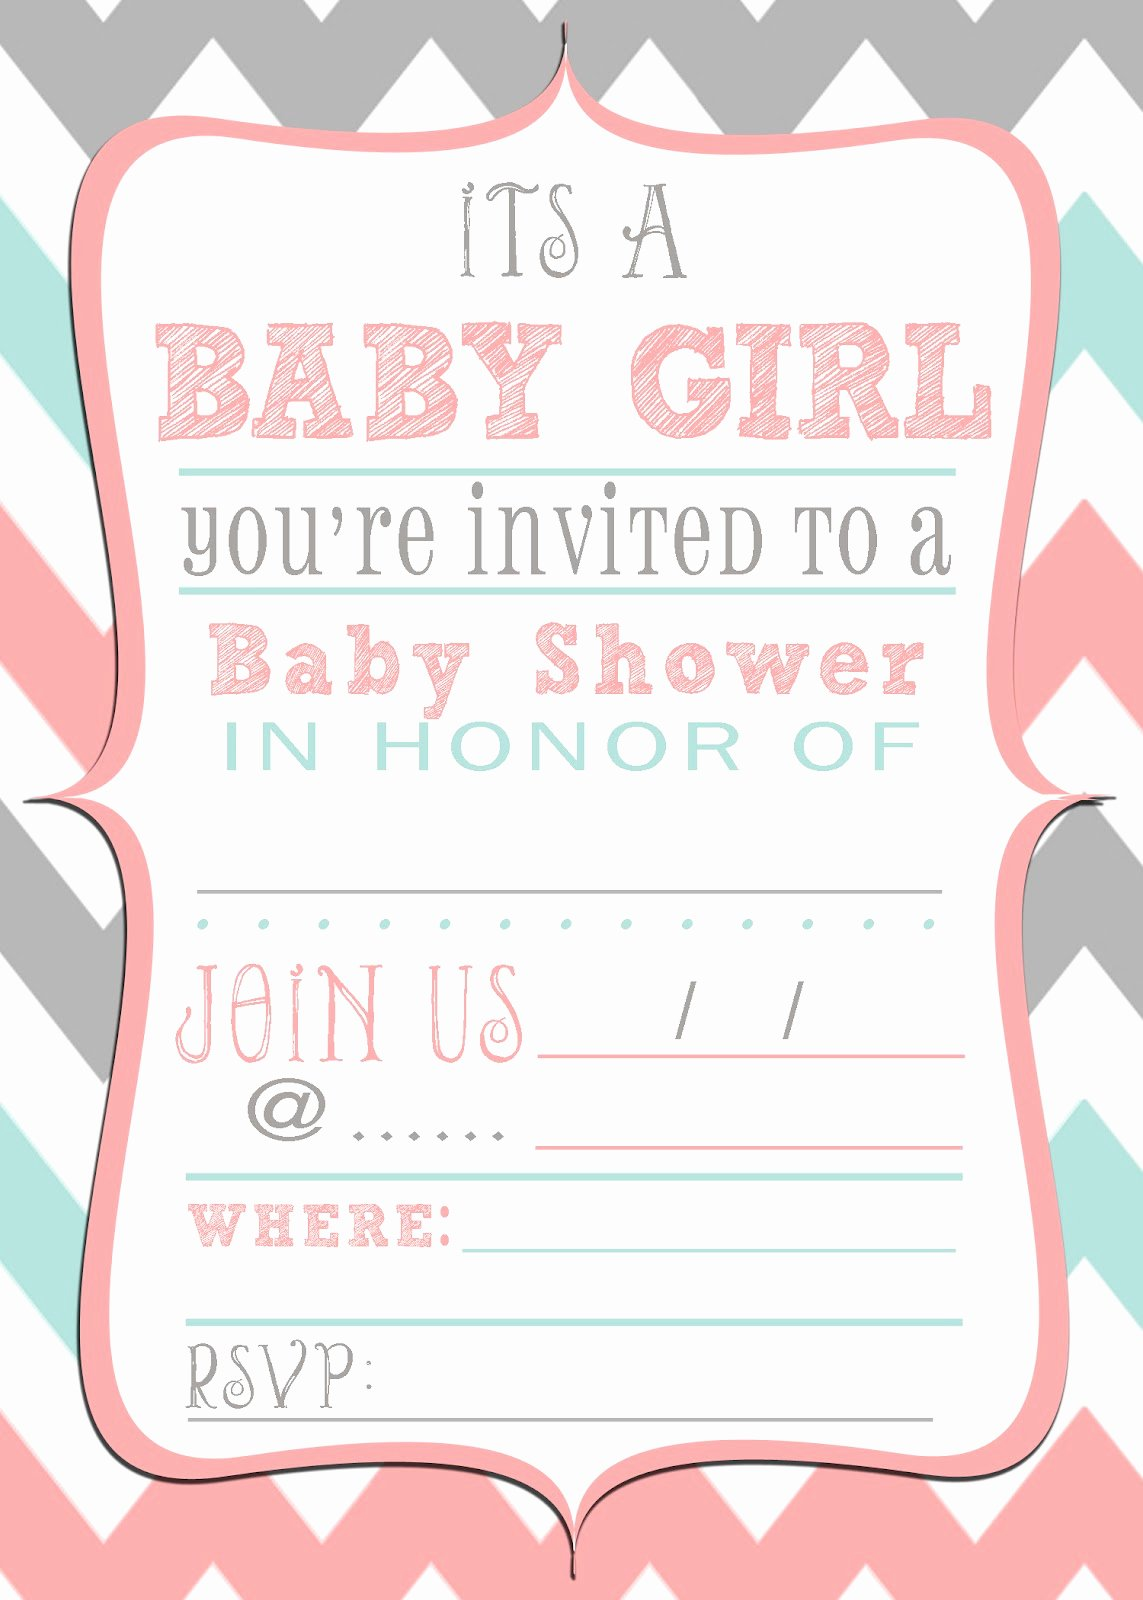 Baby Shower Tags Template Inspirational Mrs This and that Baby Shower Banner Free Downloads